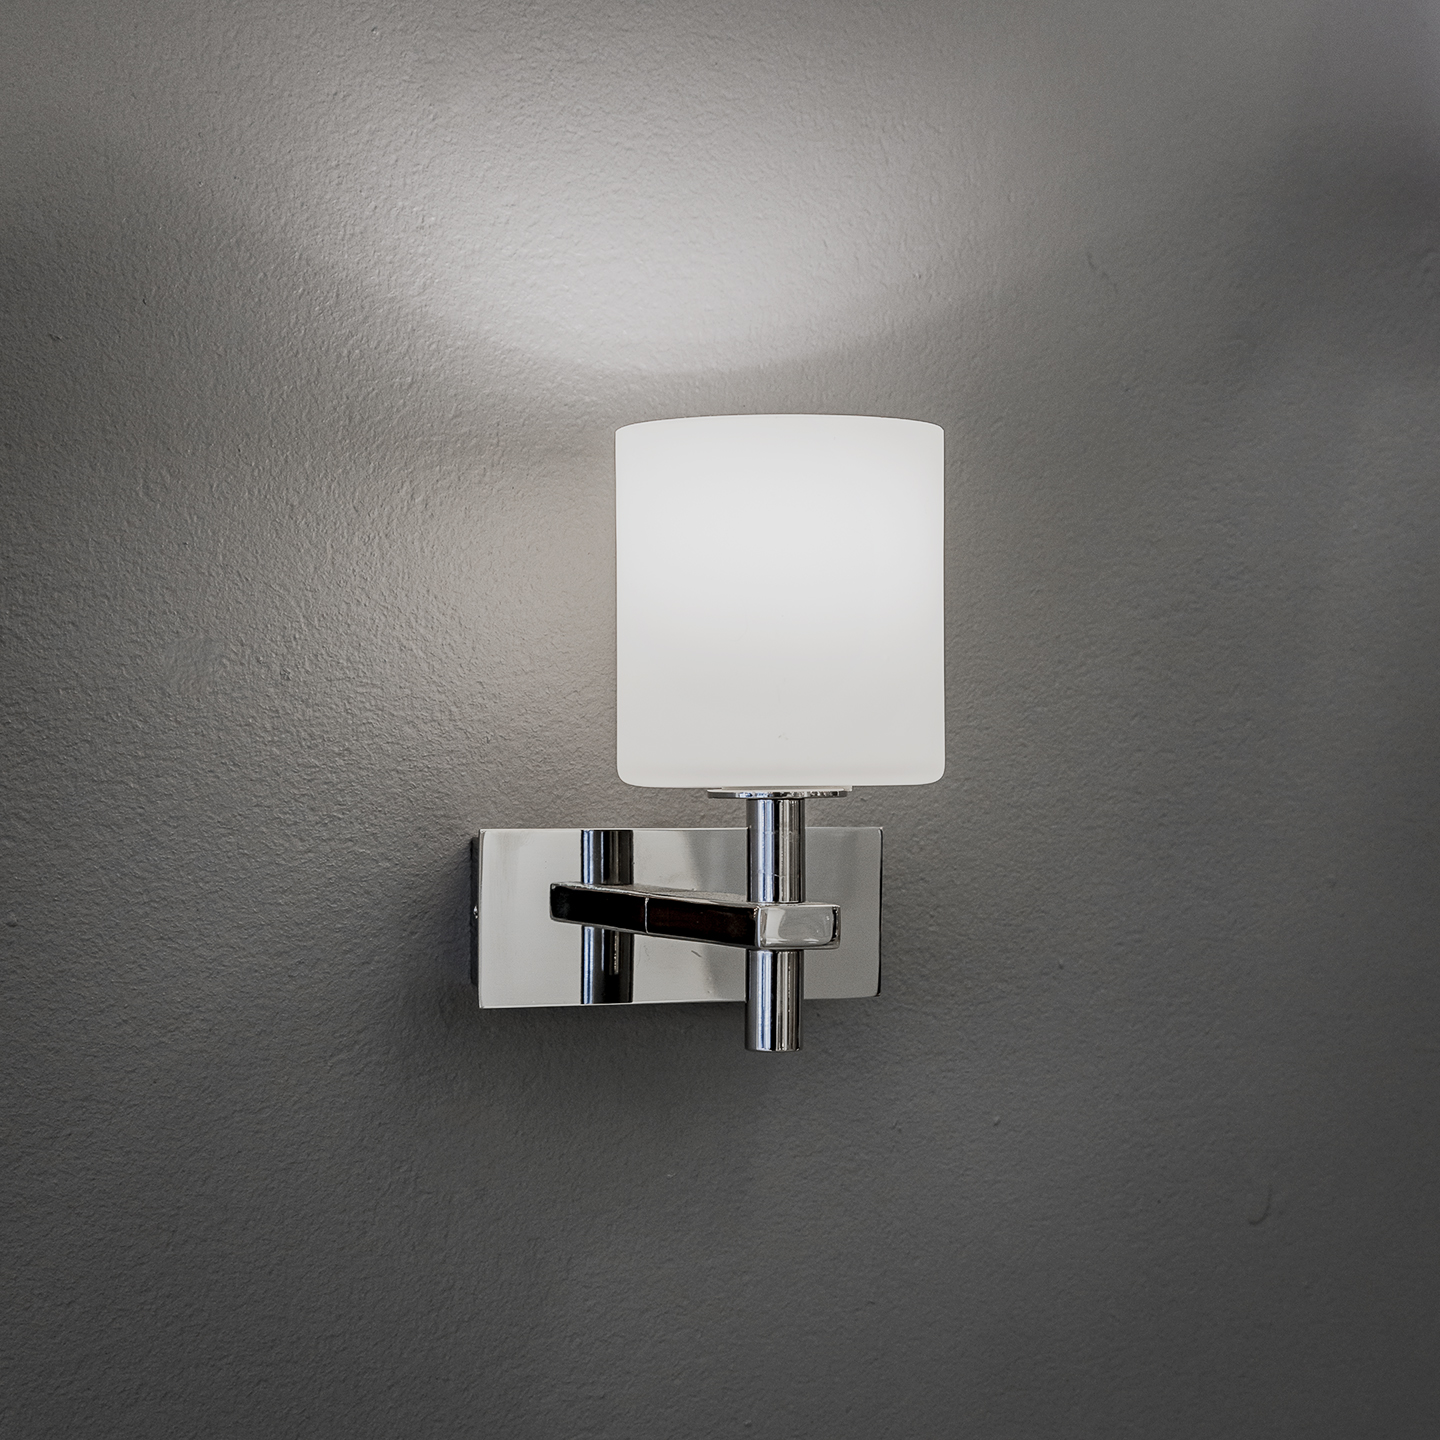 Modern designer interior wall lights in sydney z two lights read more aloadofball Image collections